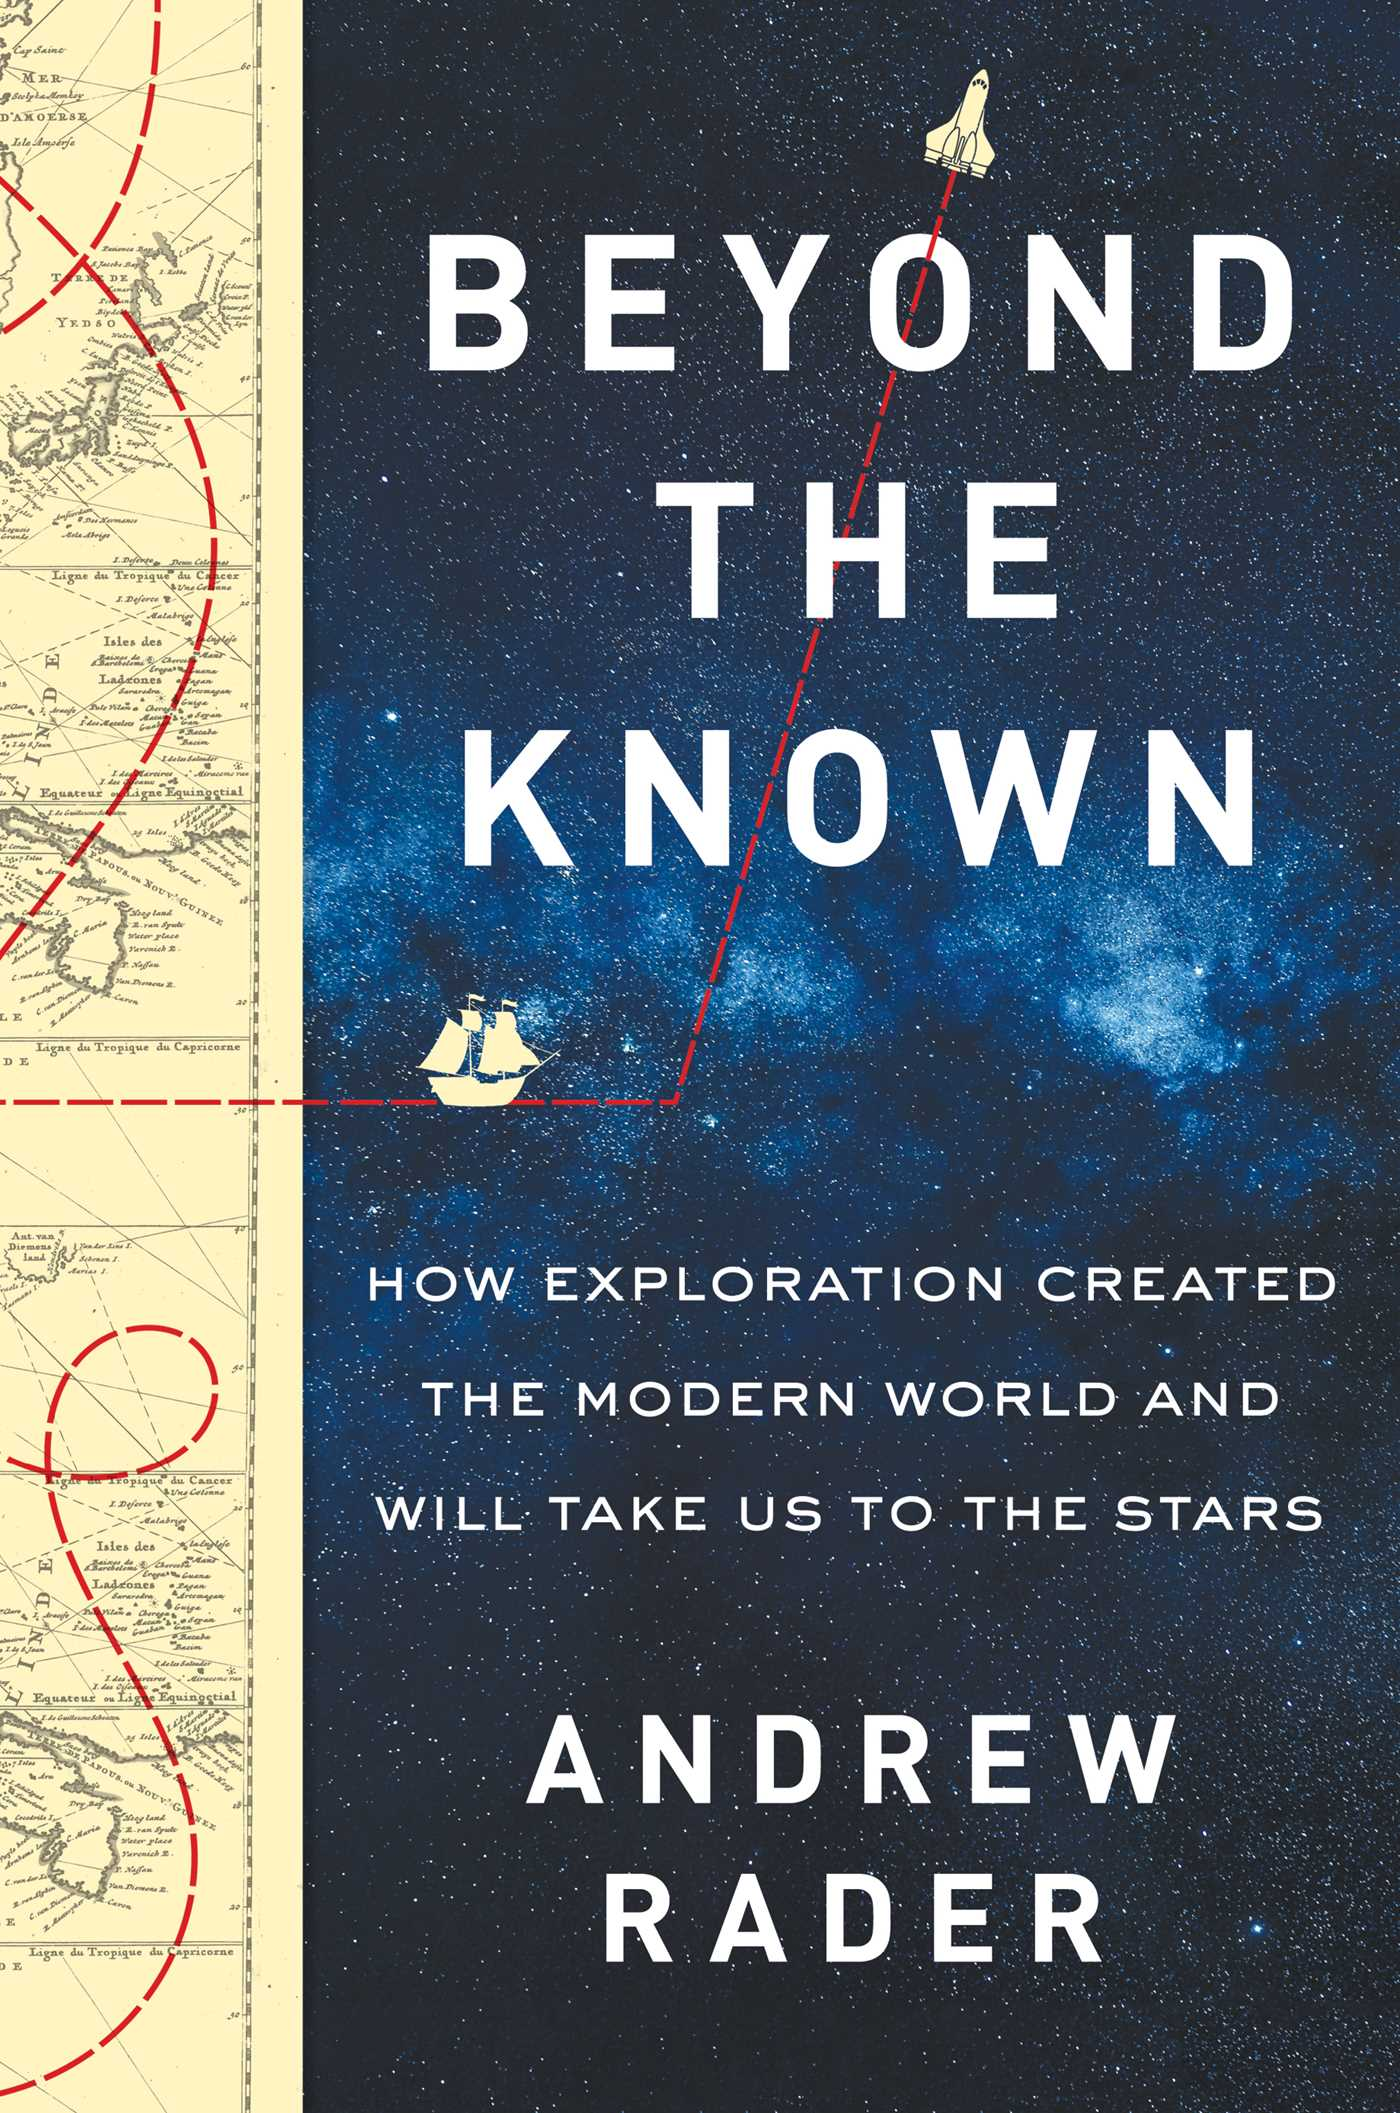 Beyond the Known by Andrew Rader